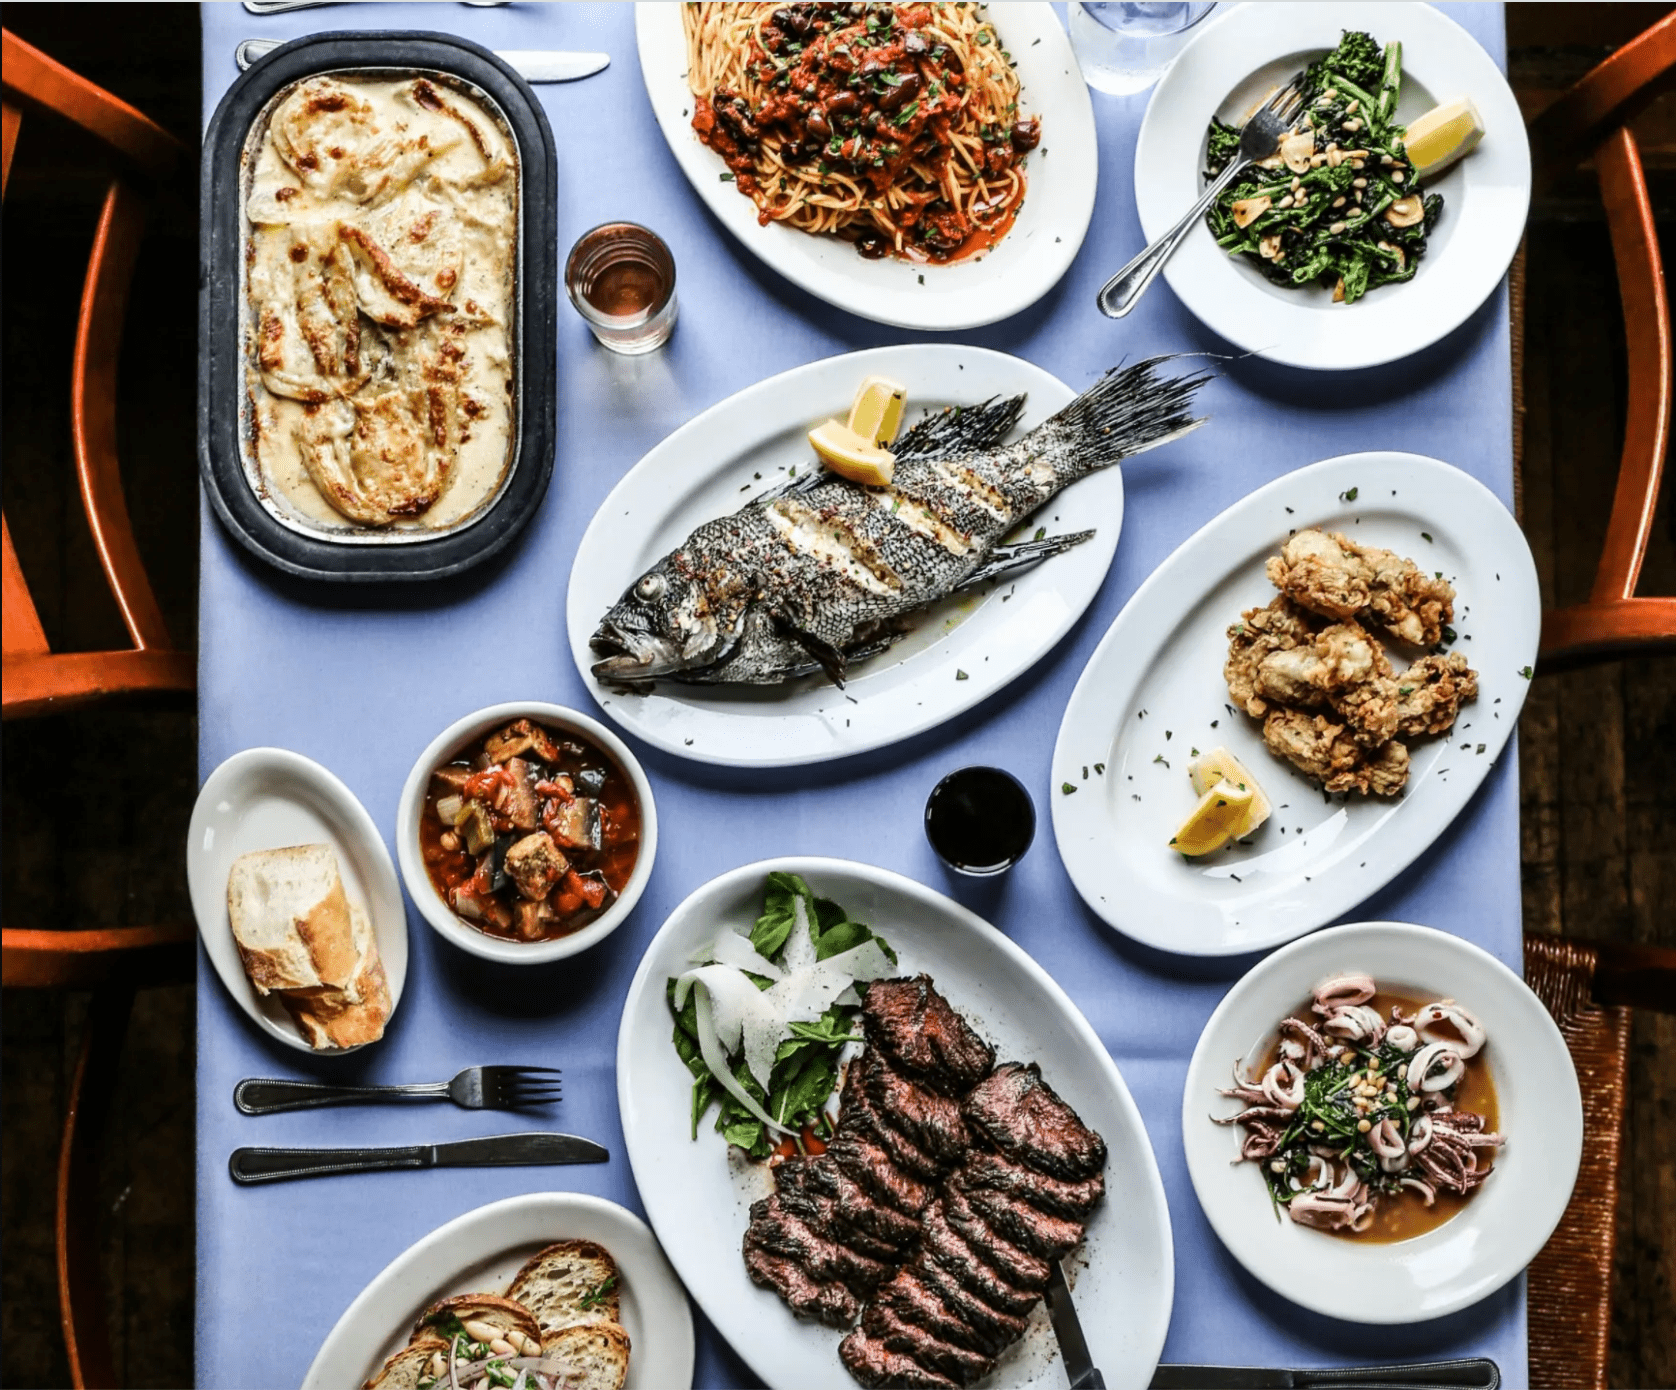 Blue table filled with italian entrees like a whole grilled fish and sliced hangar steak